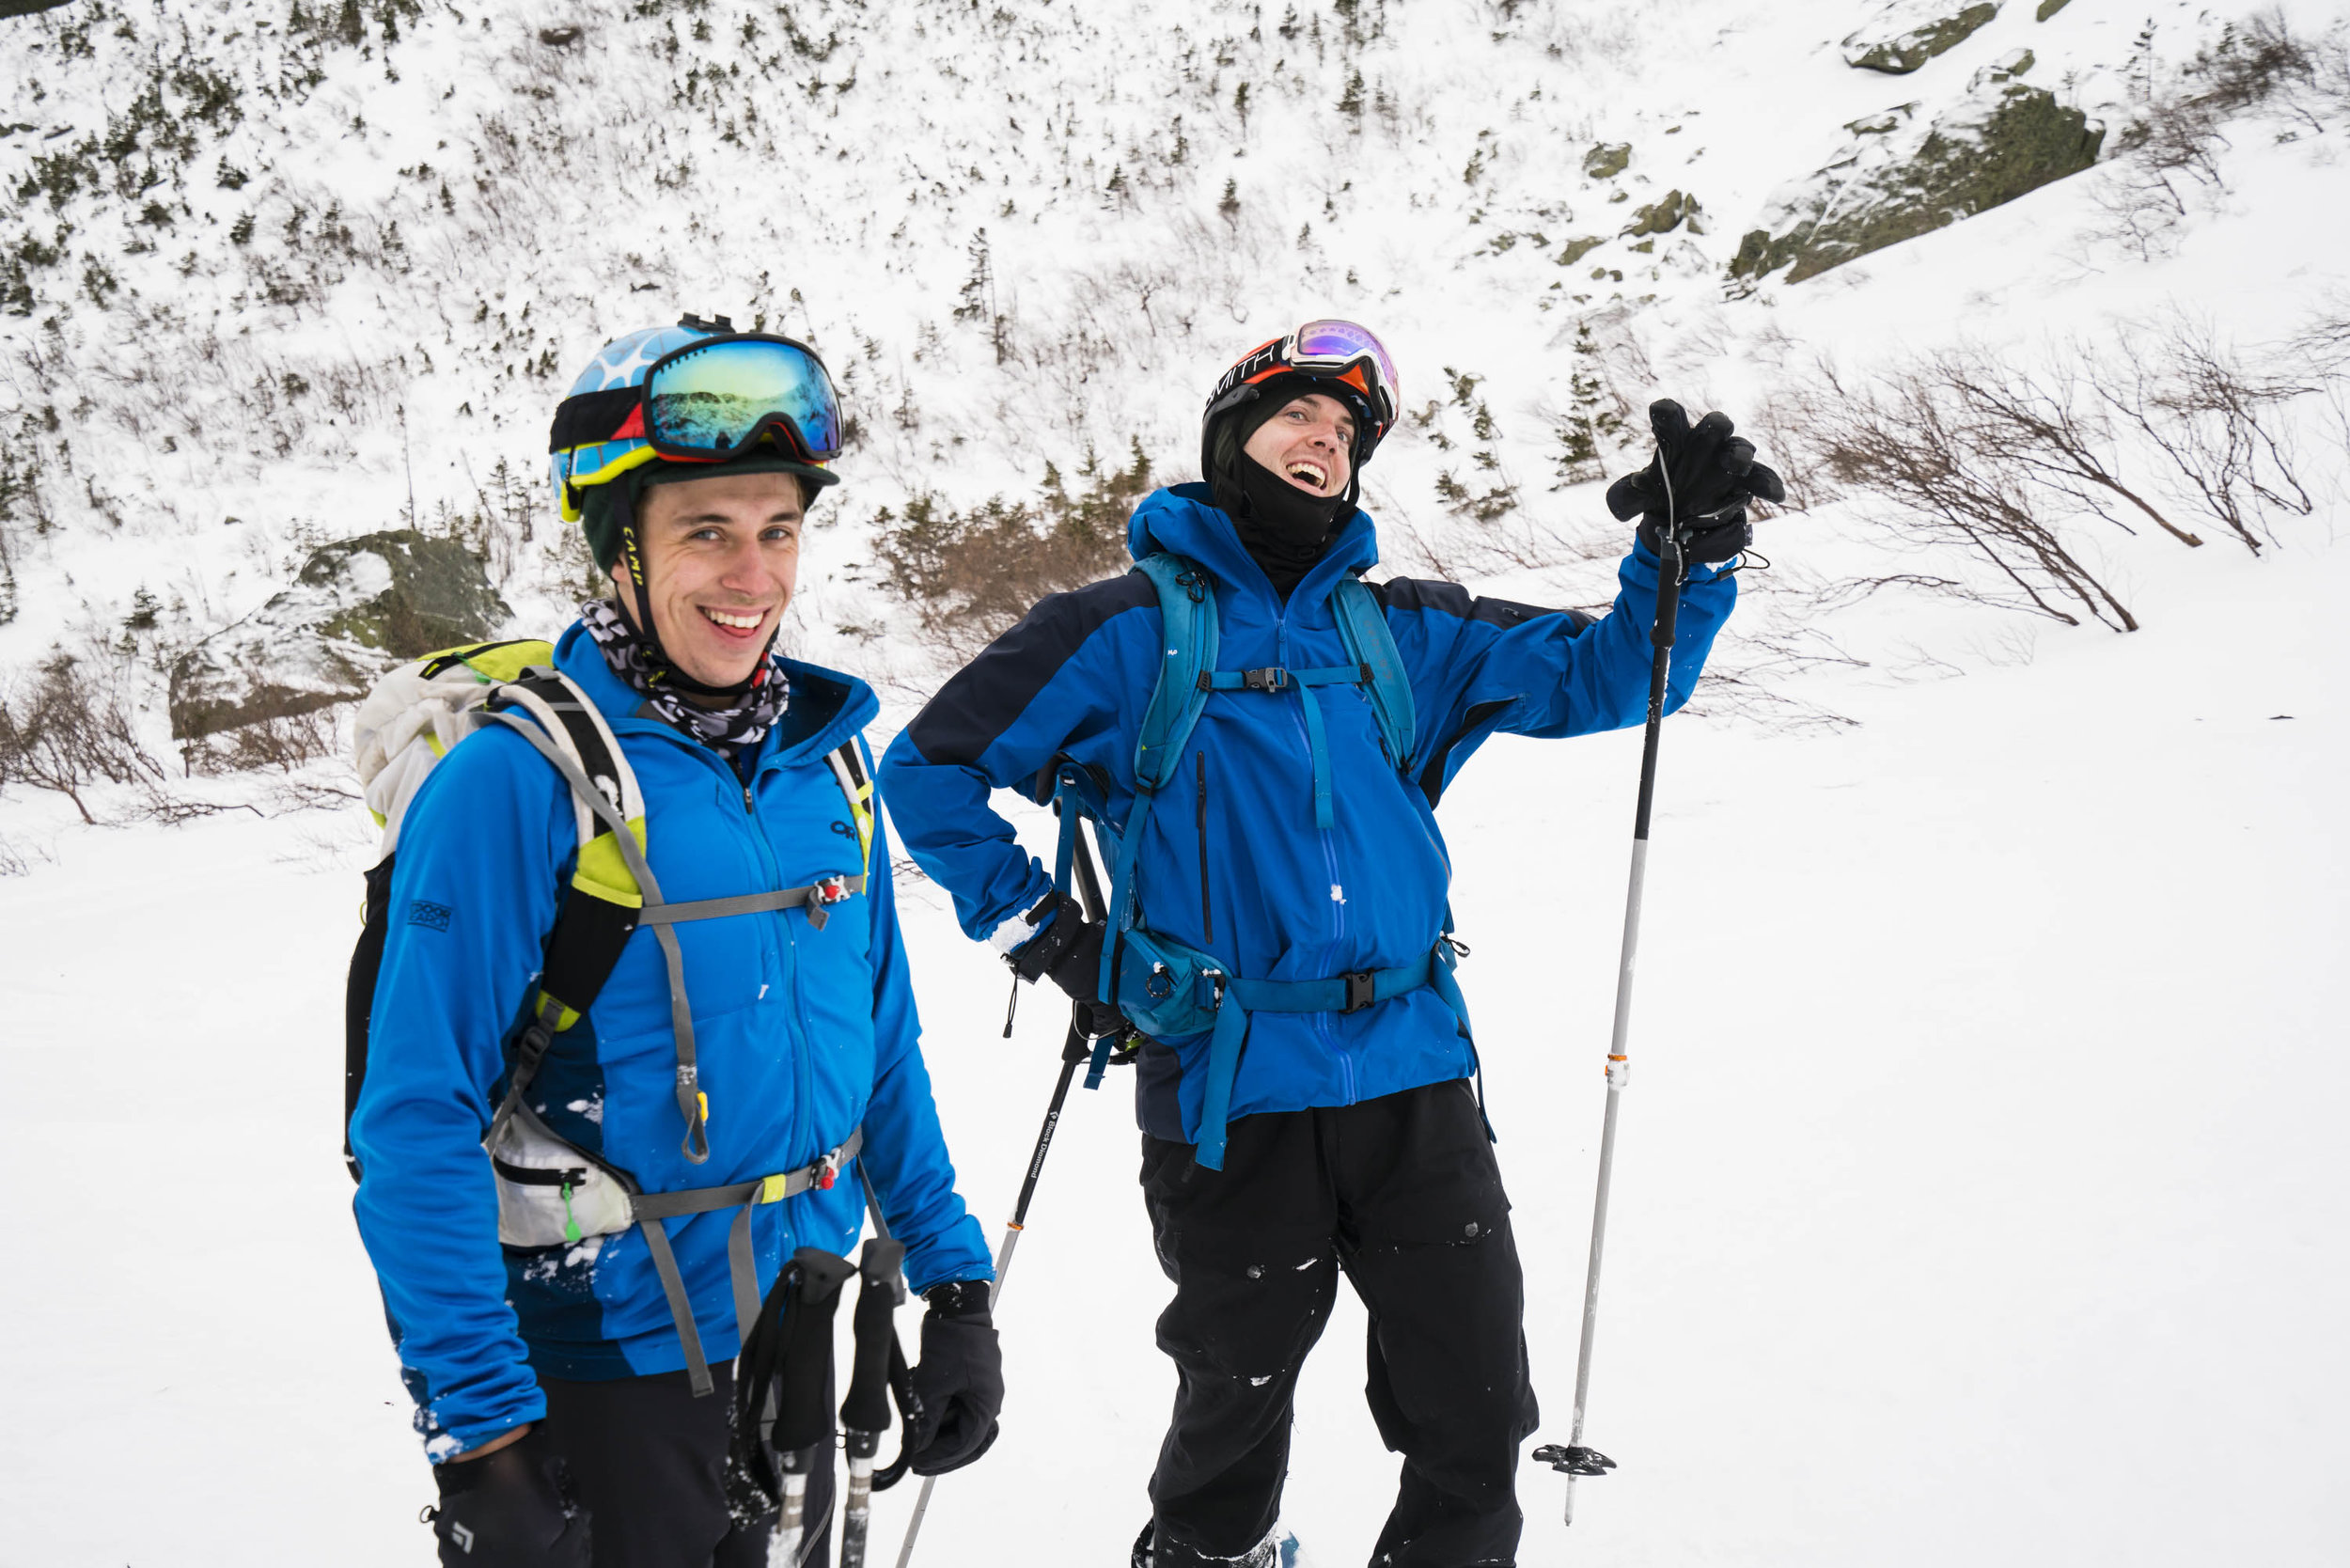 Andy and Alex in Tuckerman Ravine